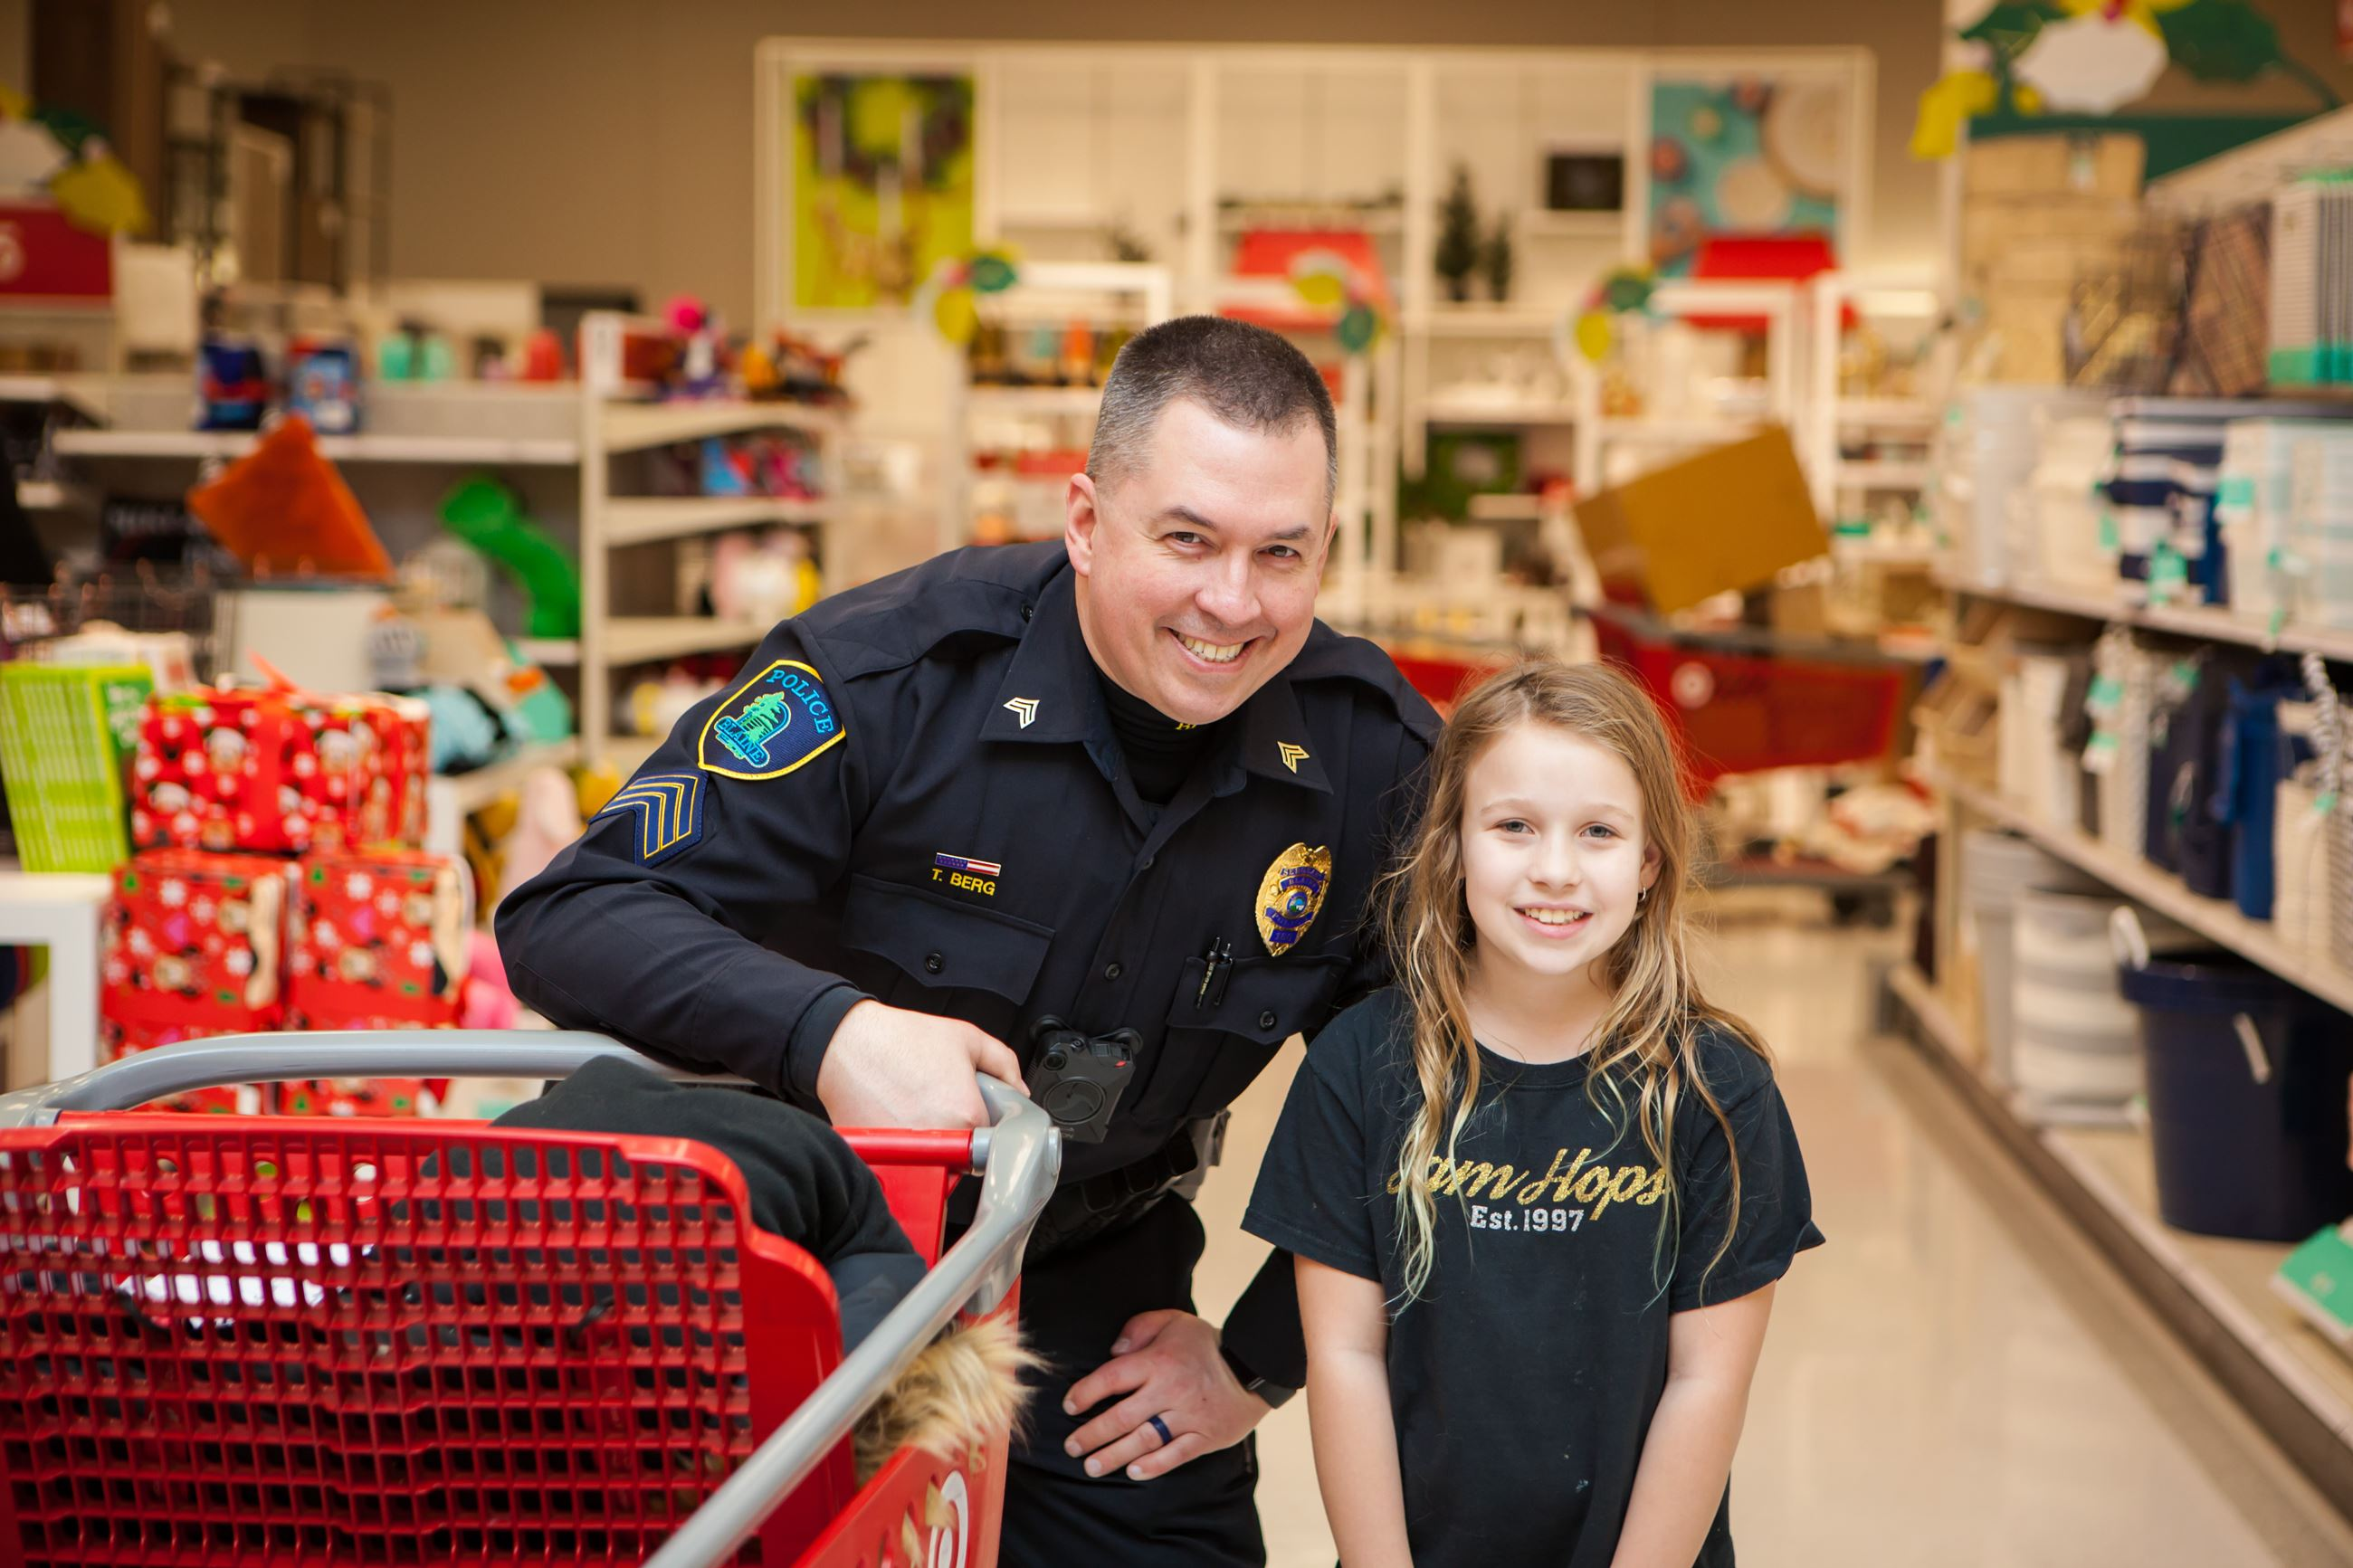 2018 Heroes and Helpers Lt. Berg and Shopper